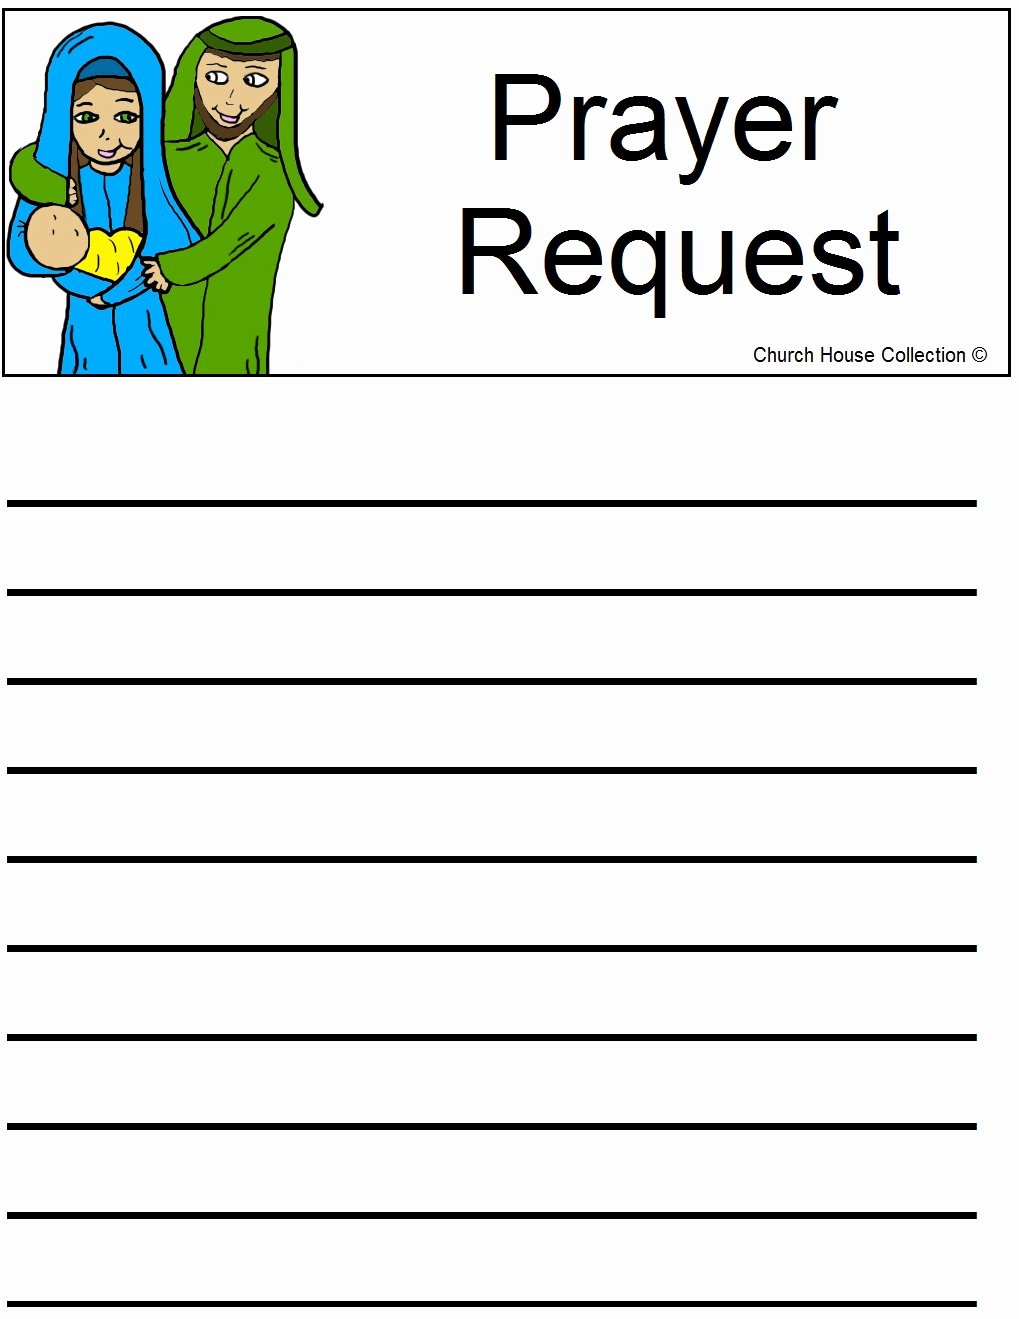 Printable Prayer Request form Awesome Church House Collection Blog Nativity Sunday School Lesson